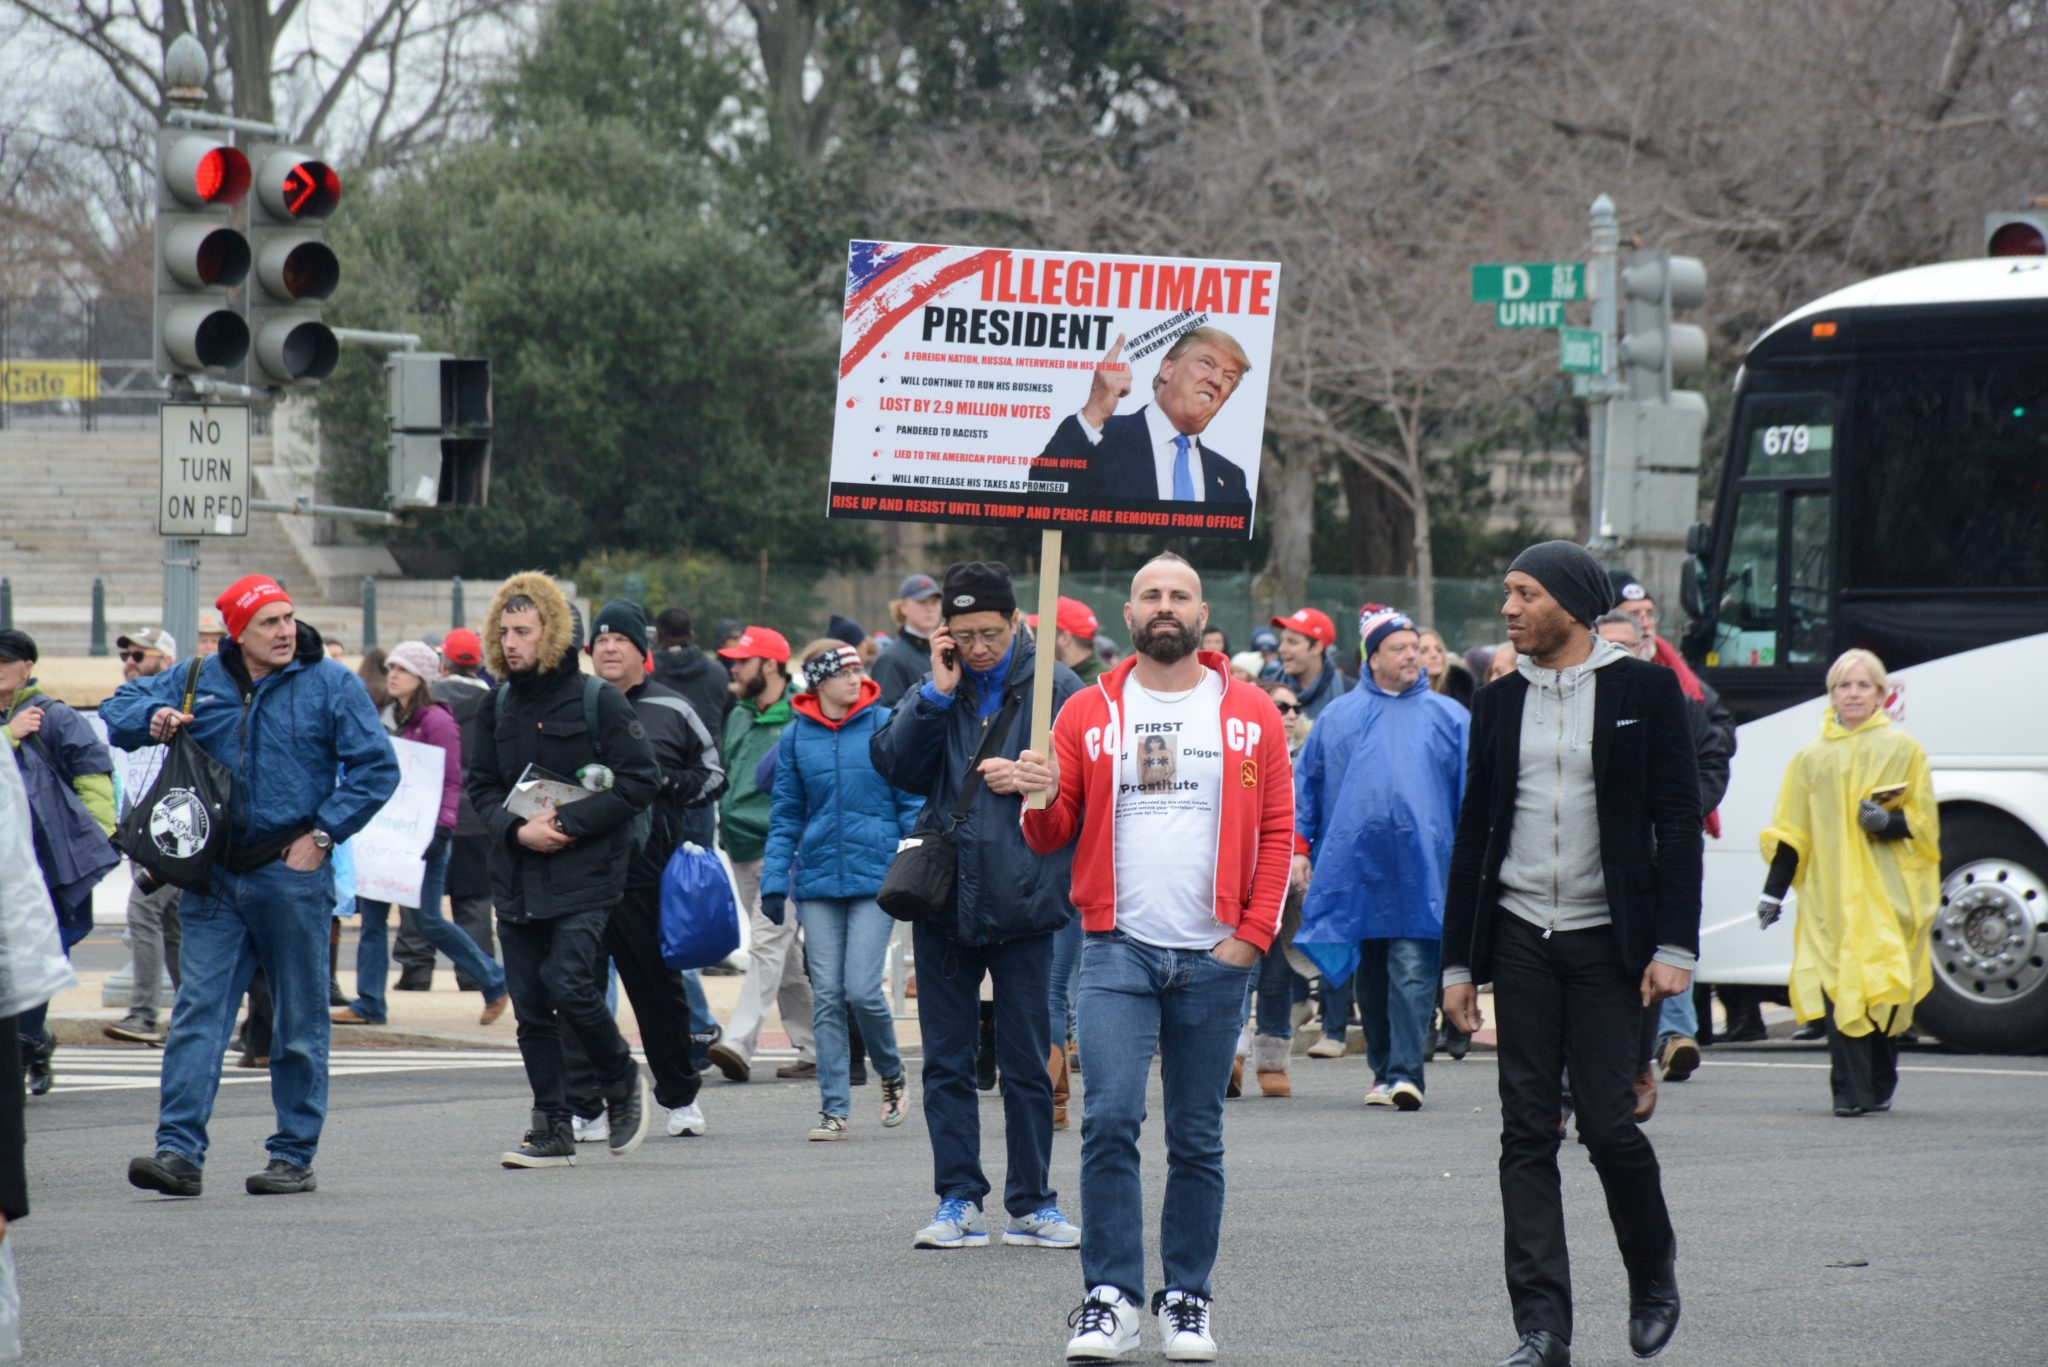 Protesters mixed throughout the crowd leaving the Capitol after the swearing-in of President Donald J. Trump on January 20, 2017. /Photo by Roy Lewis